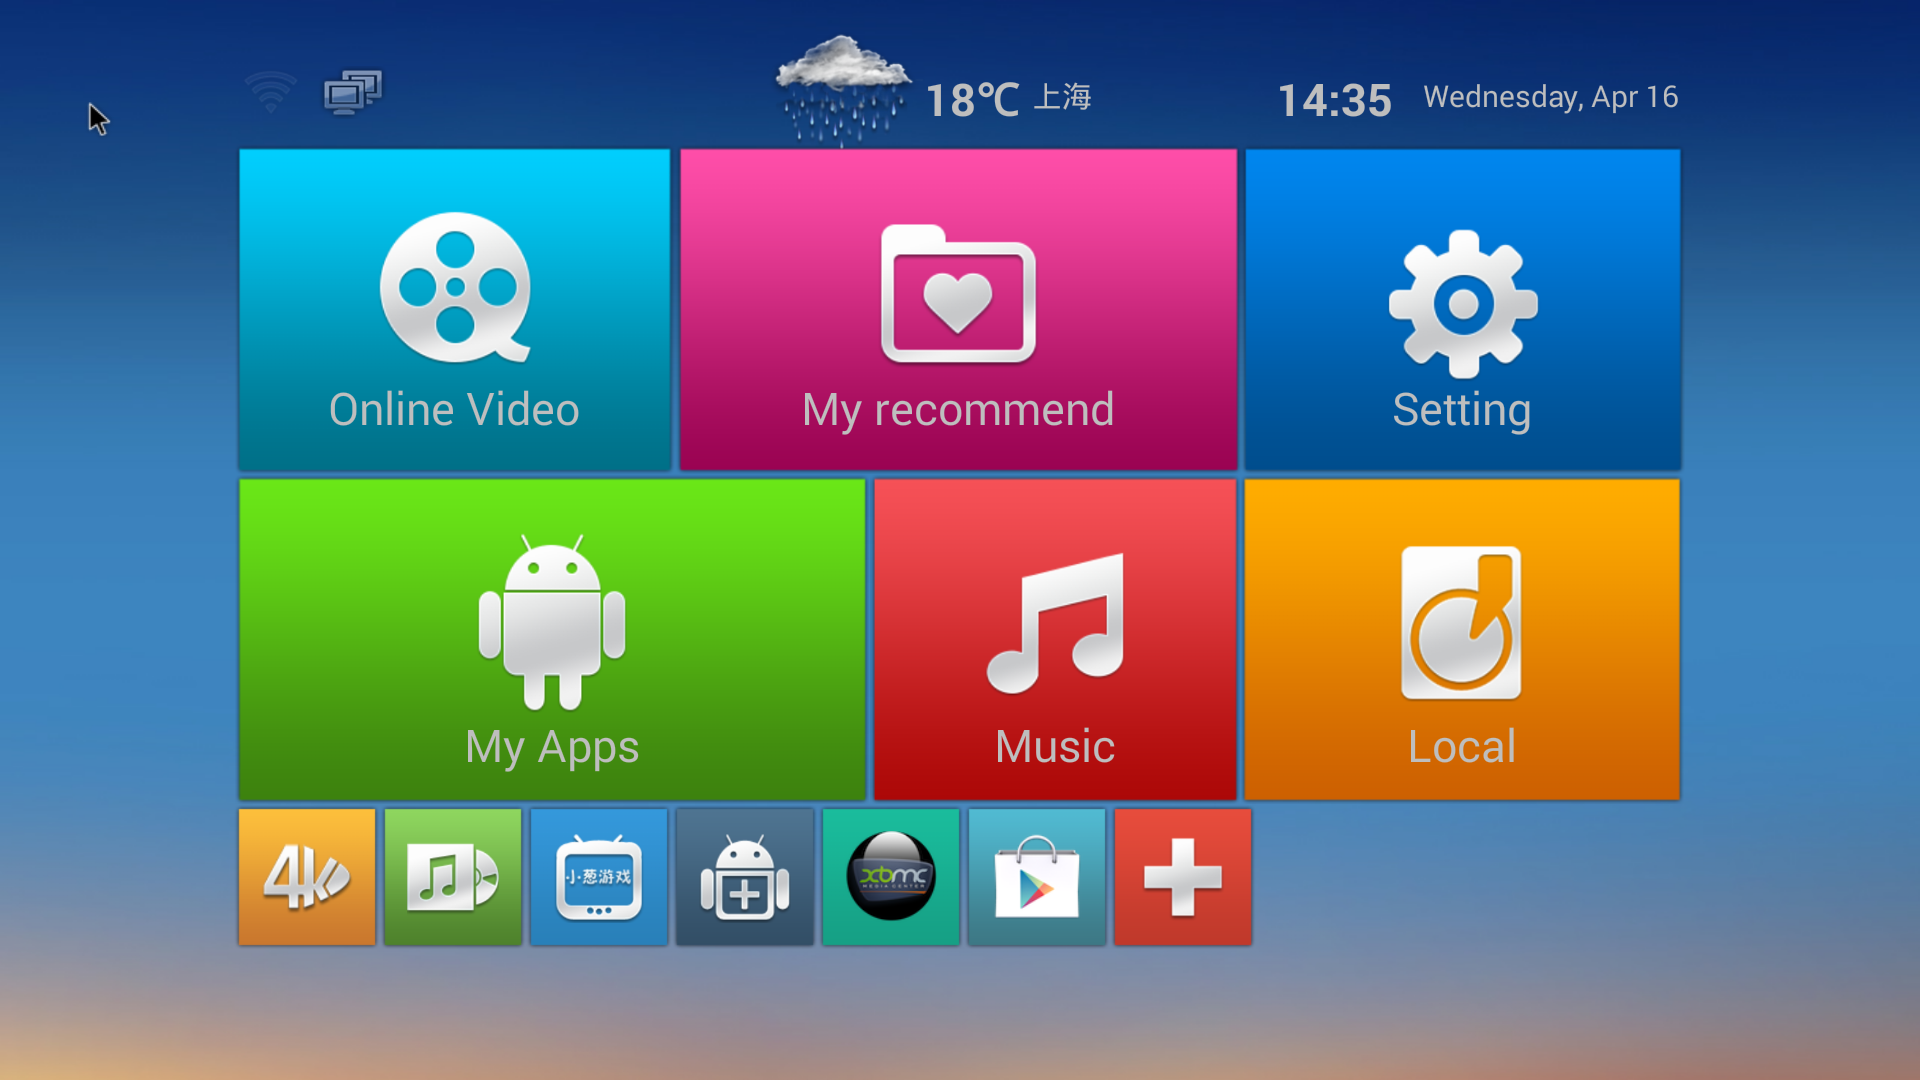 Review of m8 android kitkat tv box powered by amlogic s802 soc for The best home screen wallpaper for android